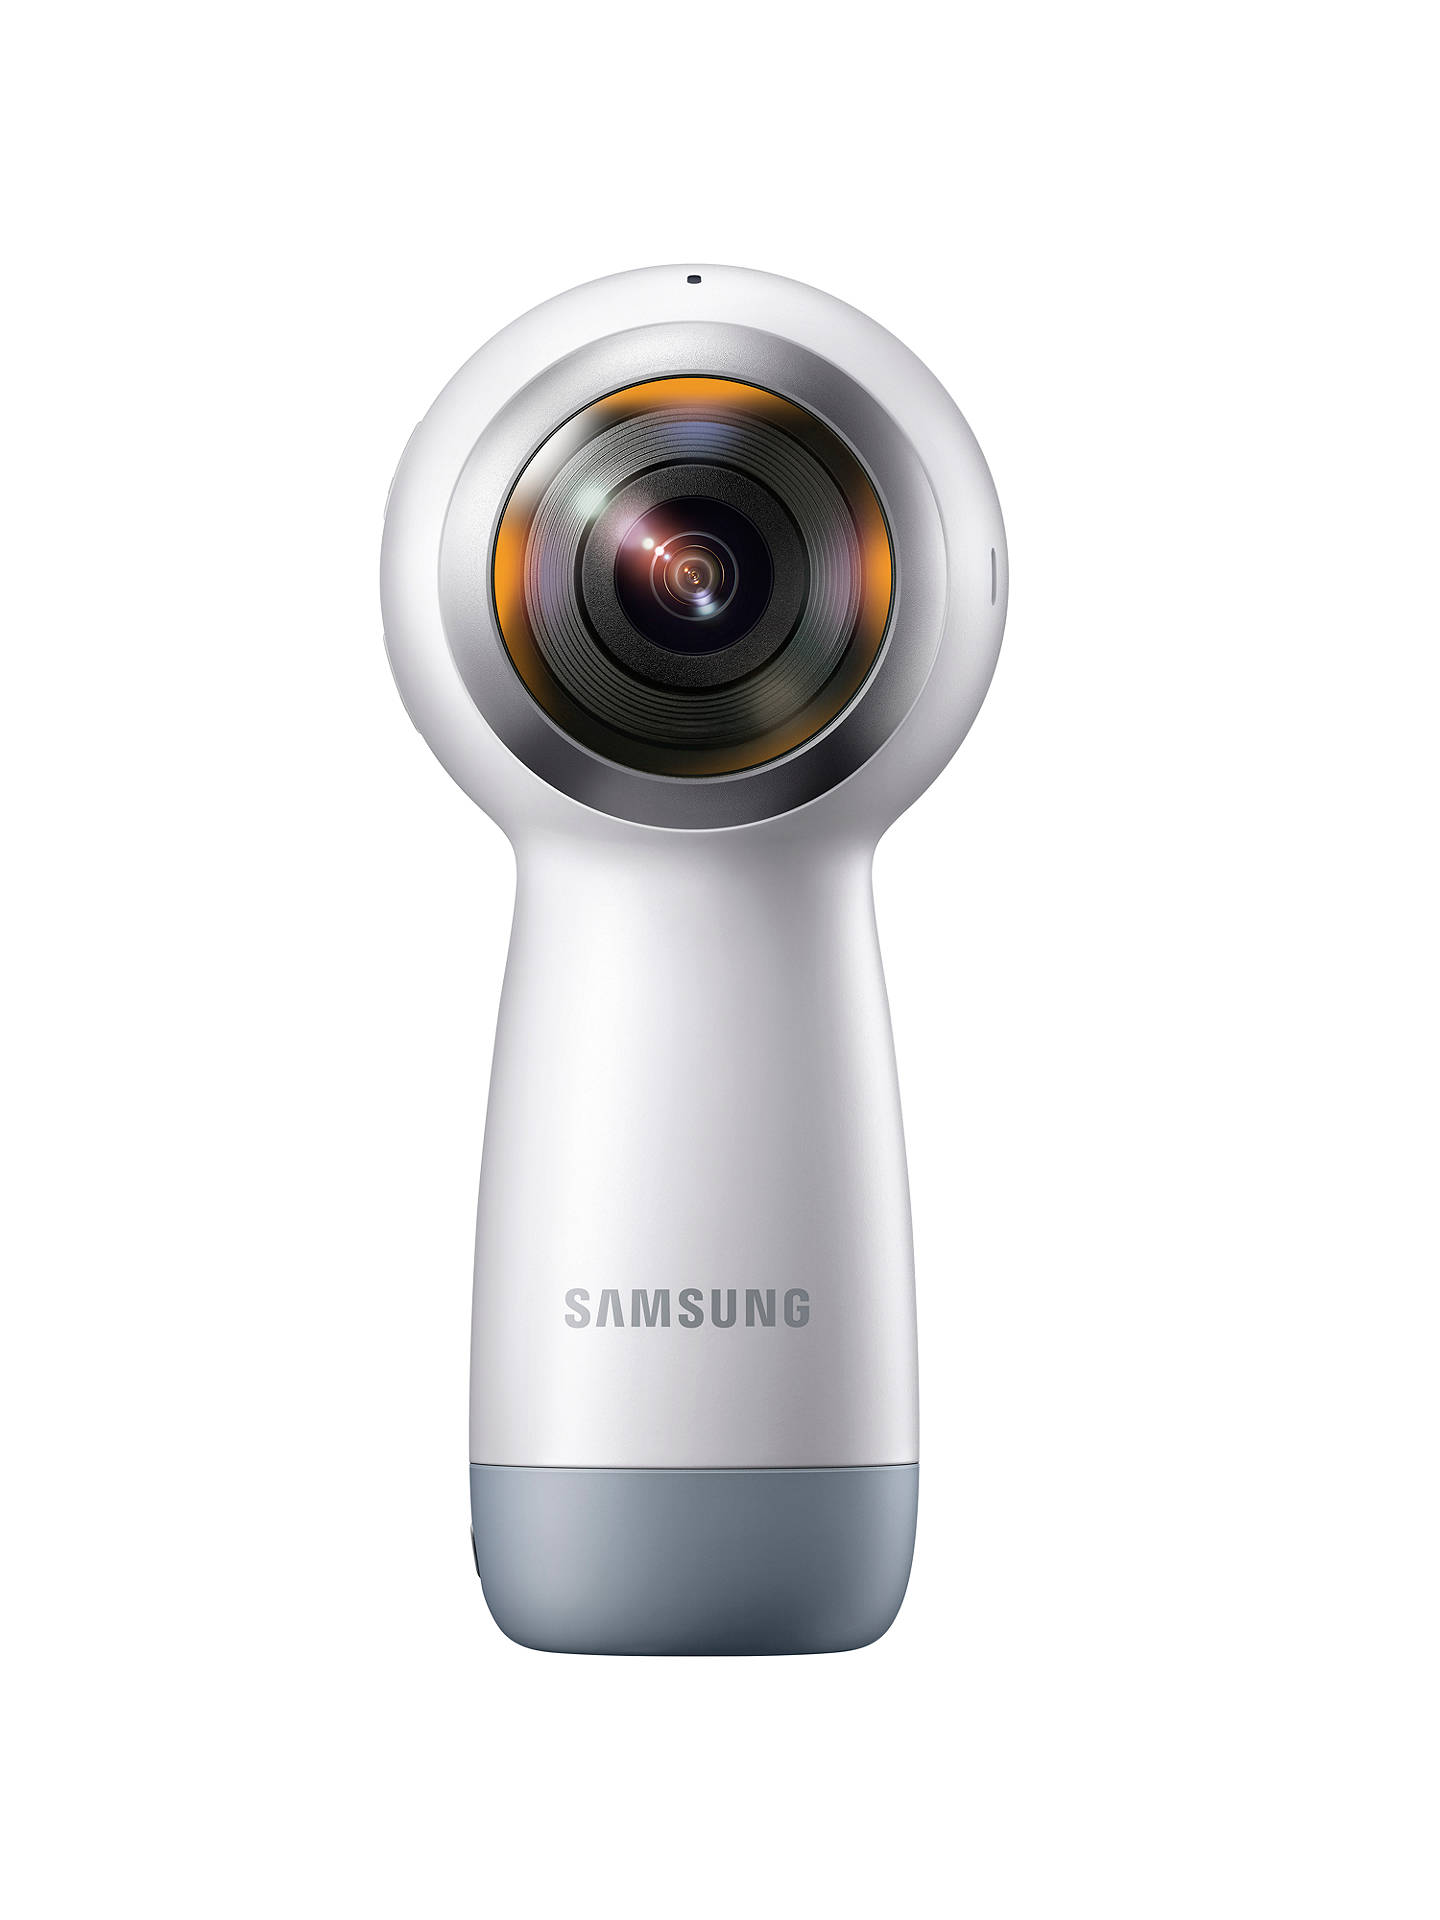 BuySamsung Gear 360 2017 Action Camcorder, 360° Recording, 4K UHD, Wi-Fi, Bluetooth, Dust & Splash Resistant Online at johnlewis.com